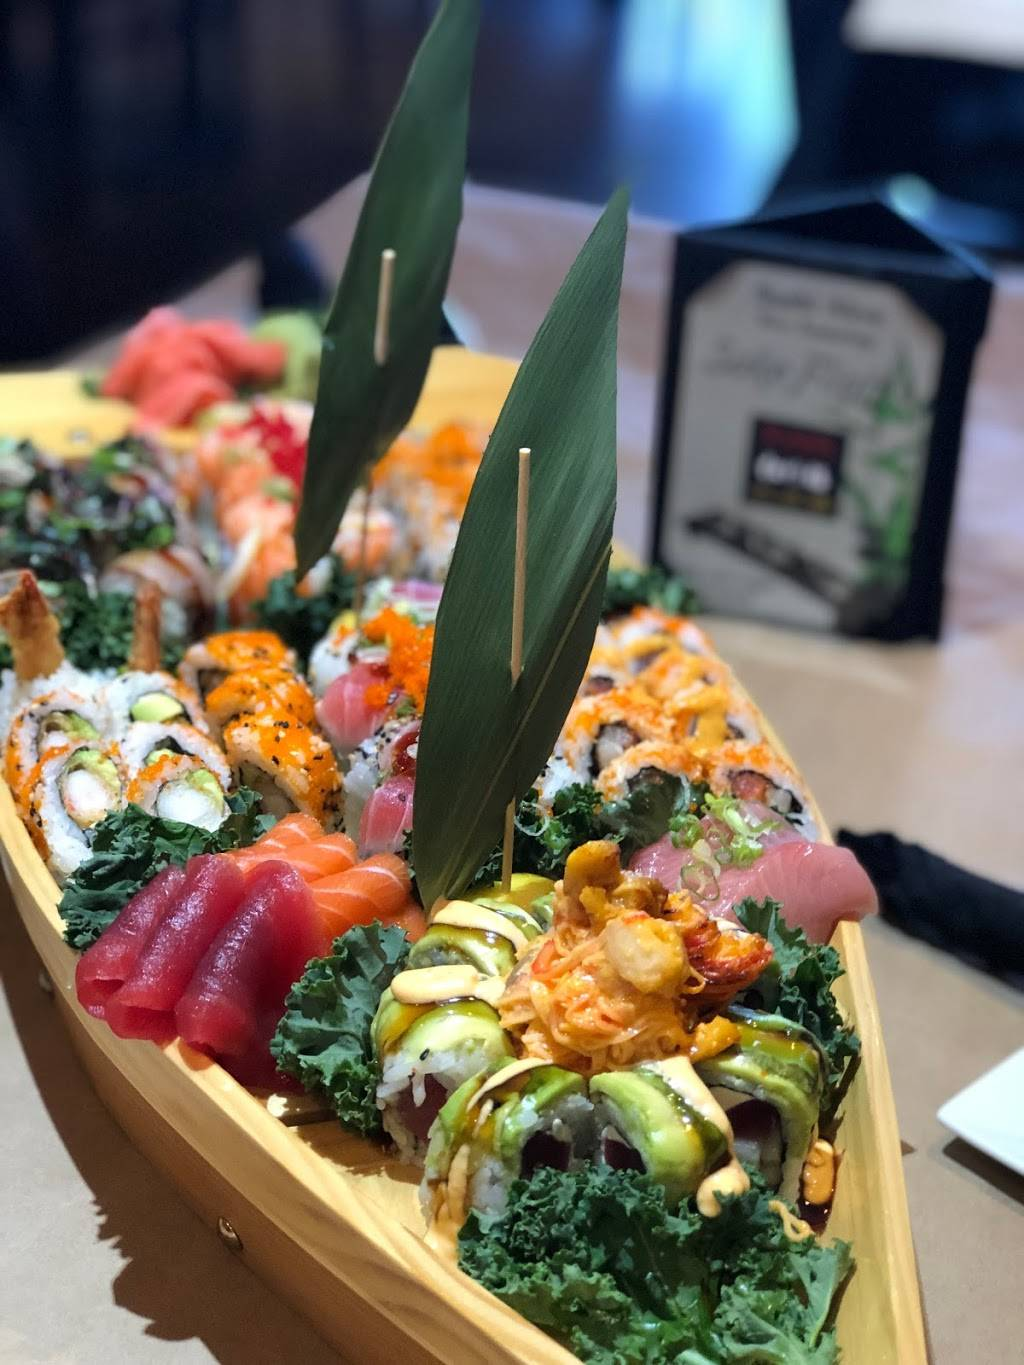 Sushi Alive Restaurant 13234 Race Track Rd Tampa Fl 33626 Usa My personal favorite is the soy 13234 race track rd tampa fl 33626 usa